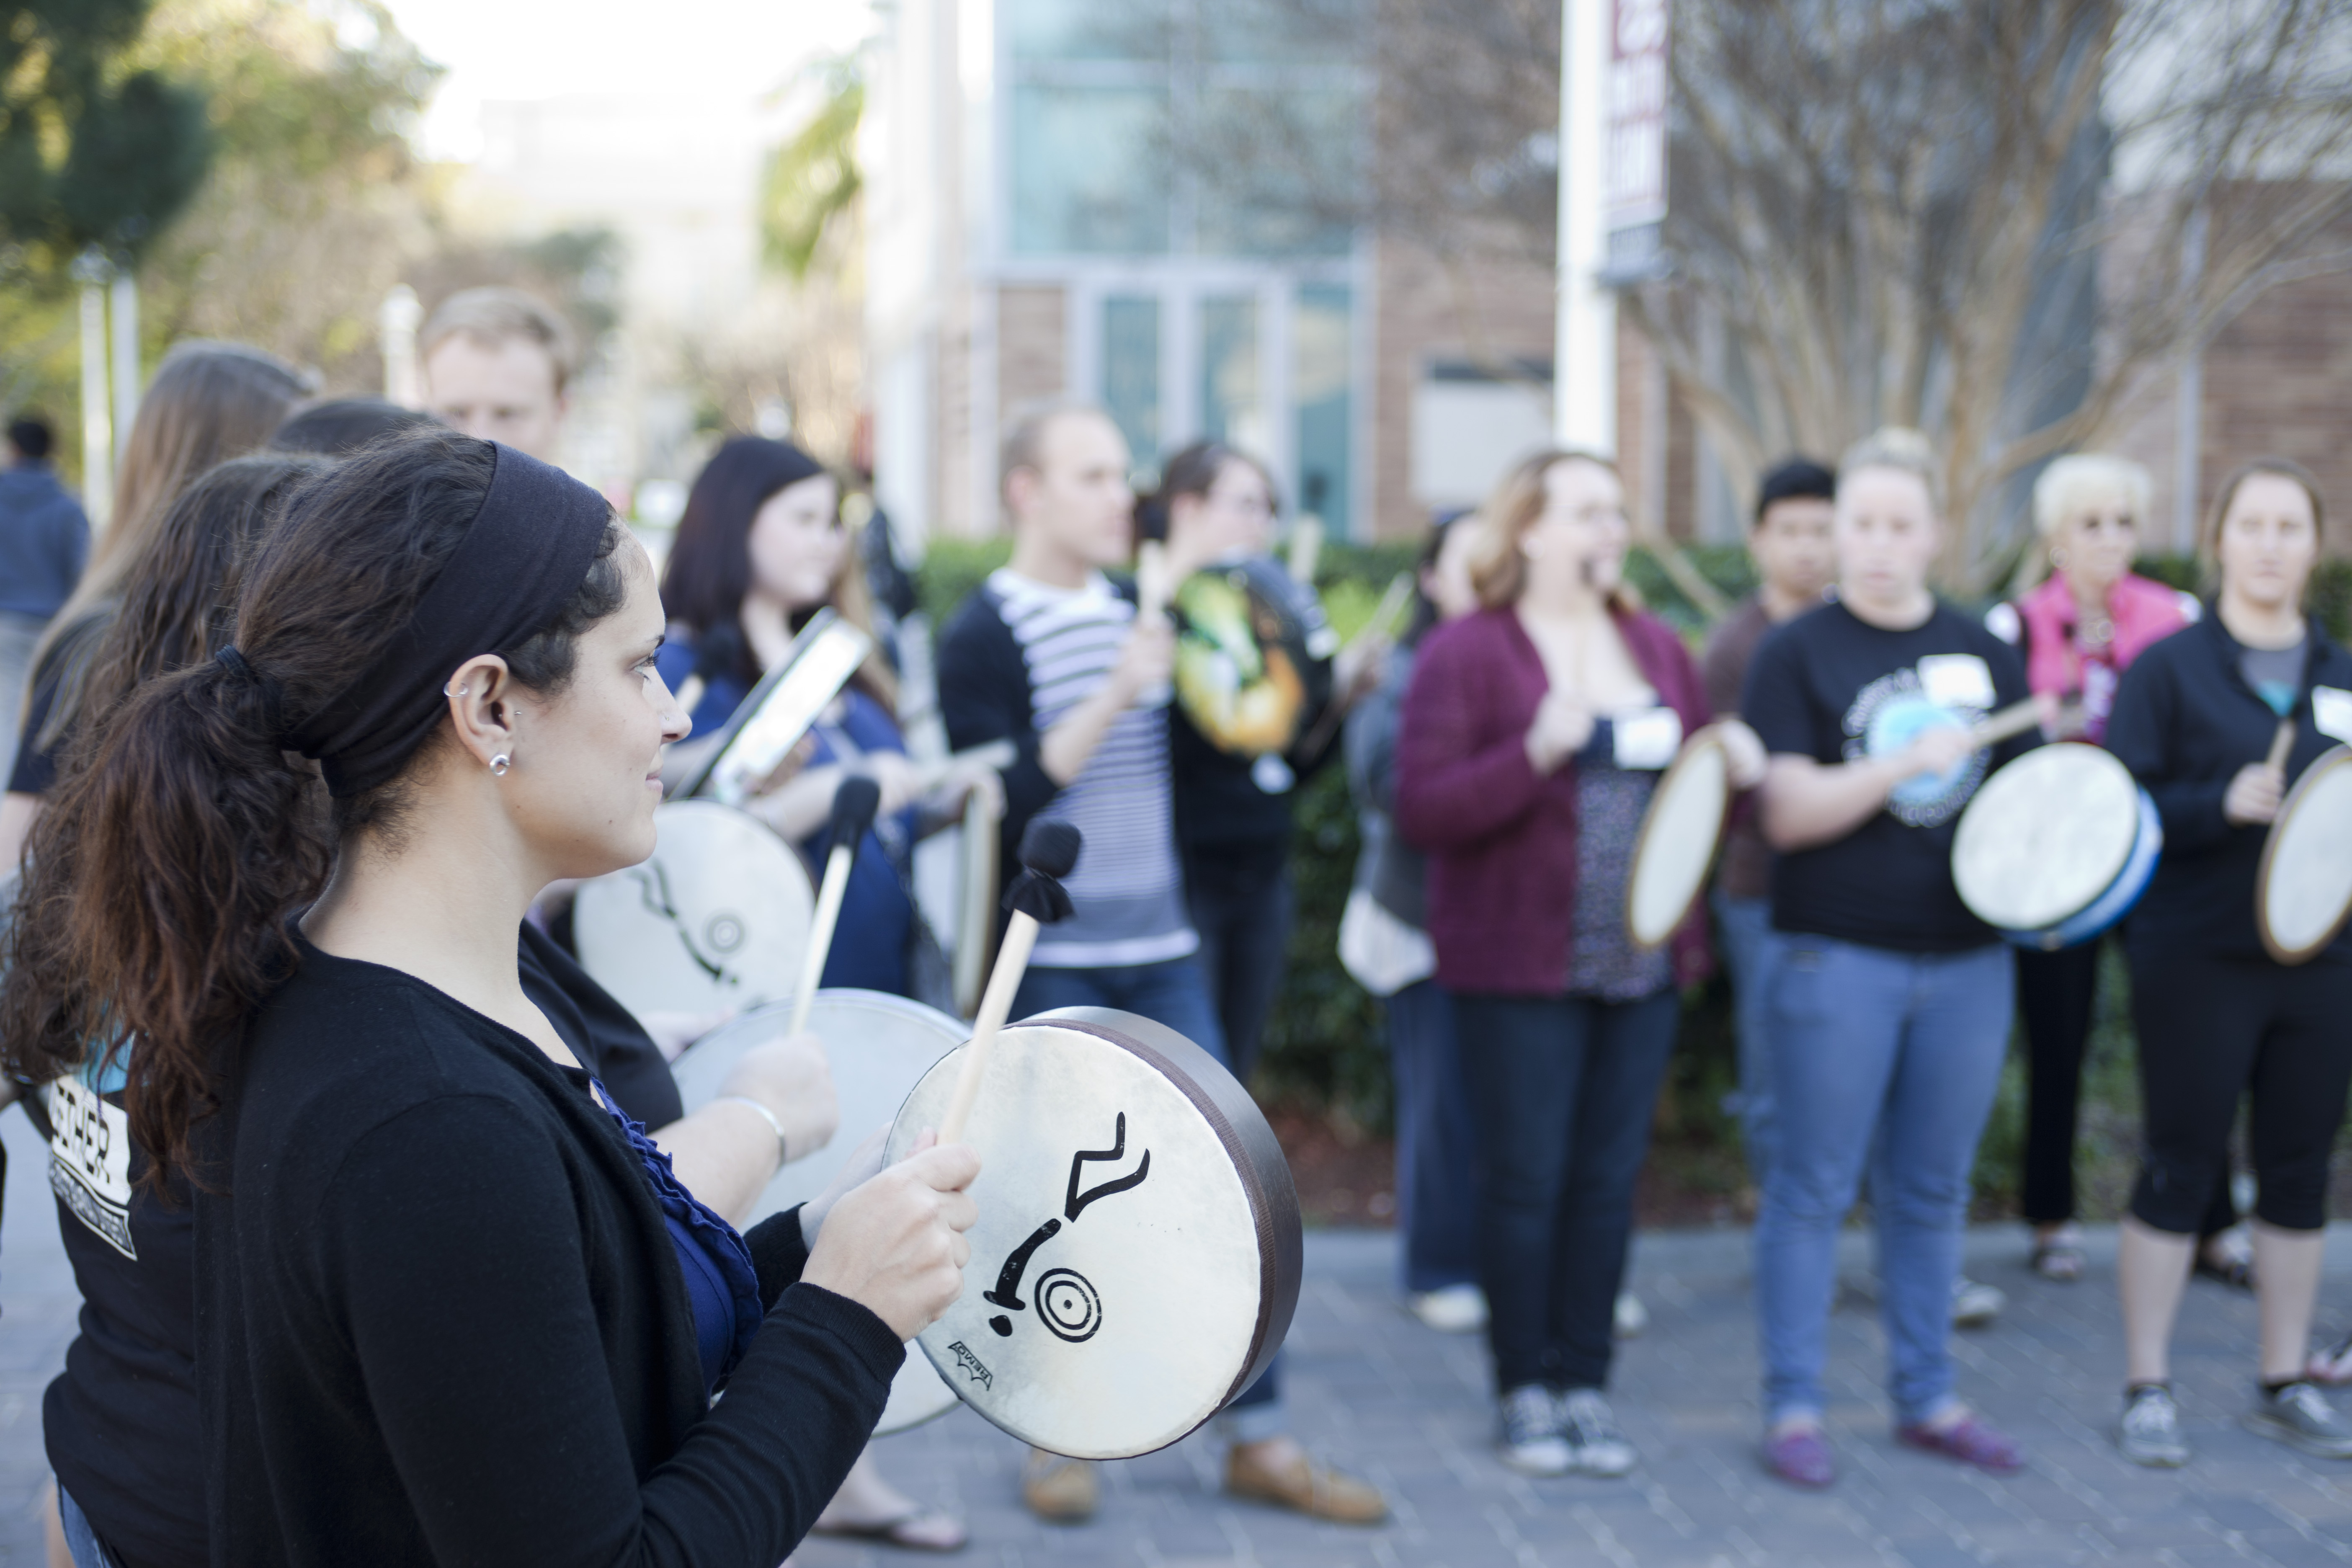 Chapman University students and college students from throughout Southern California convened on campus this month for a multi-faith conference that included a noisy and happy drum circle as part of its closing ceremony.